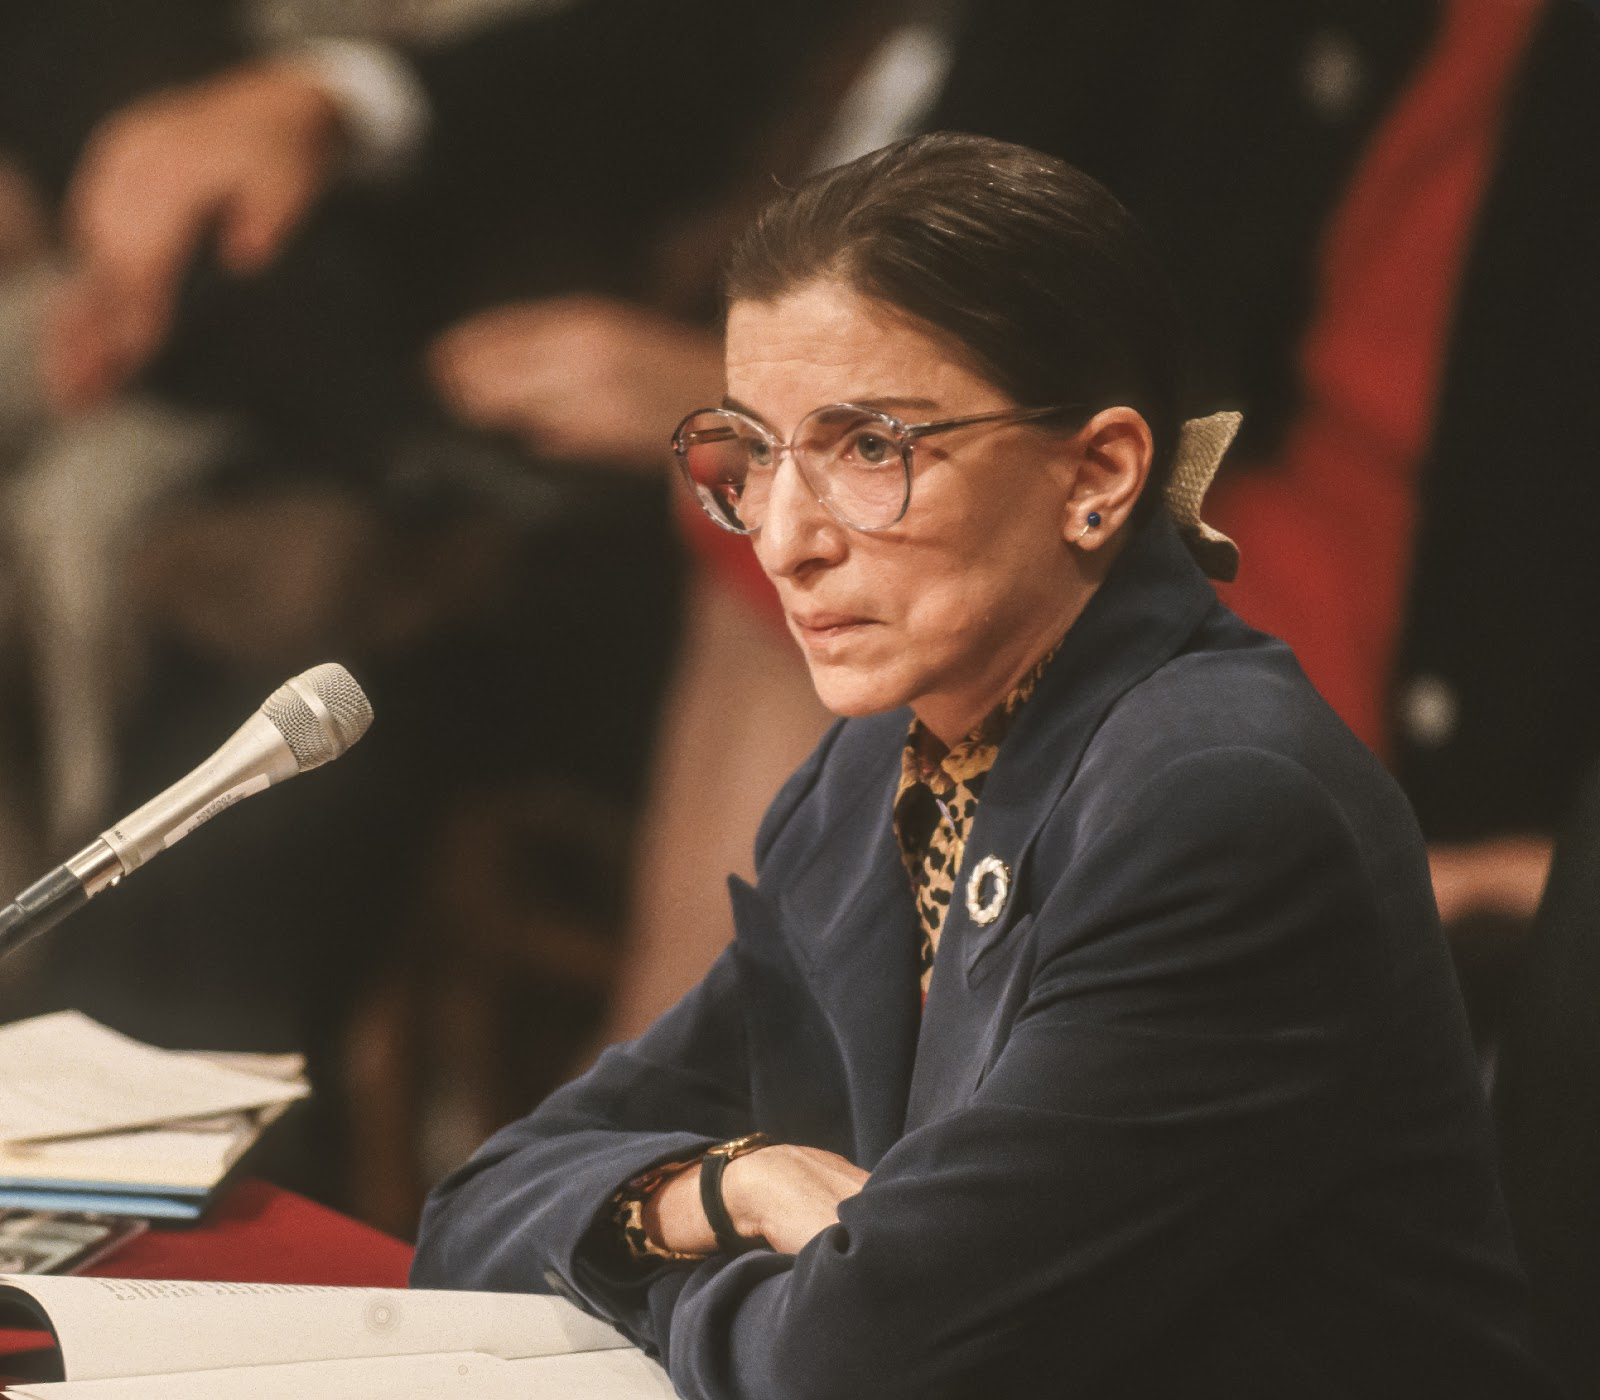 Ruth Bader Ginsburg in a courtroom during a case